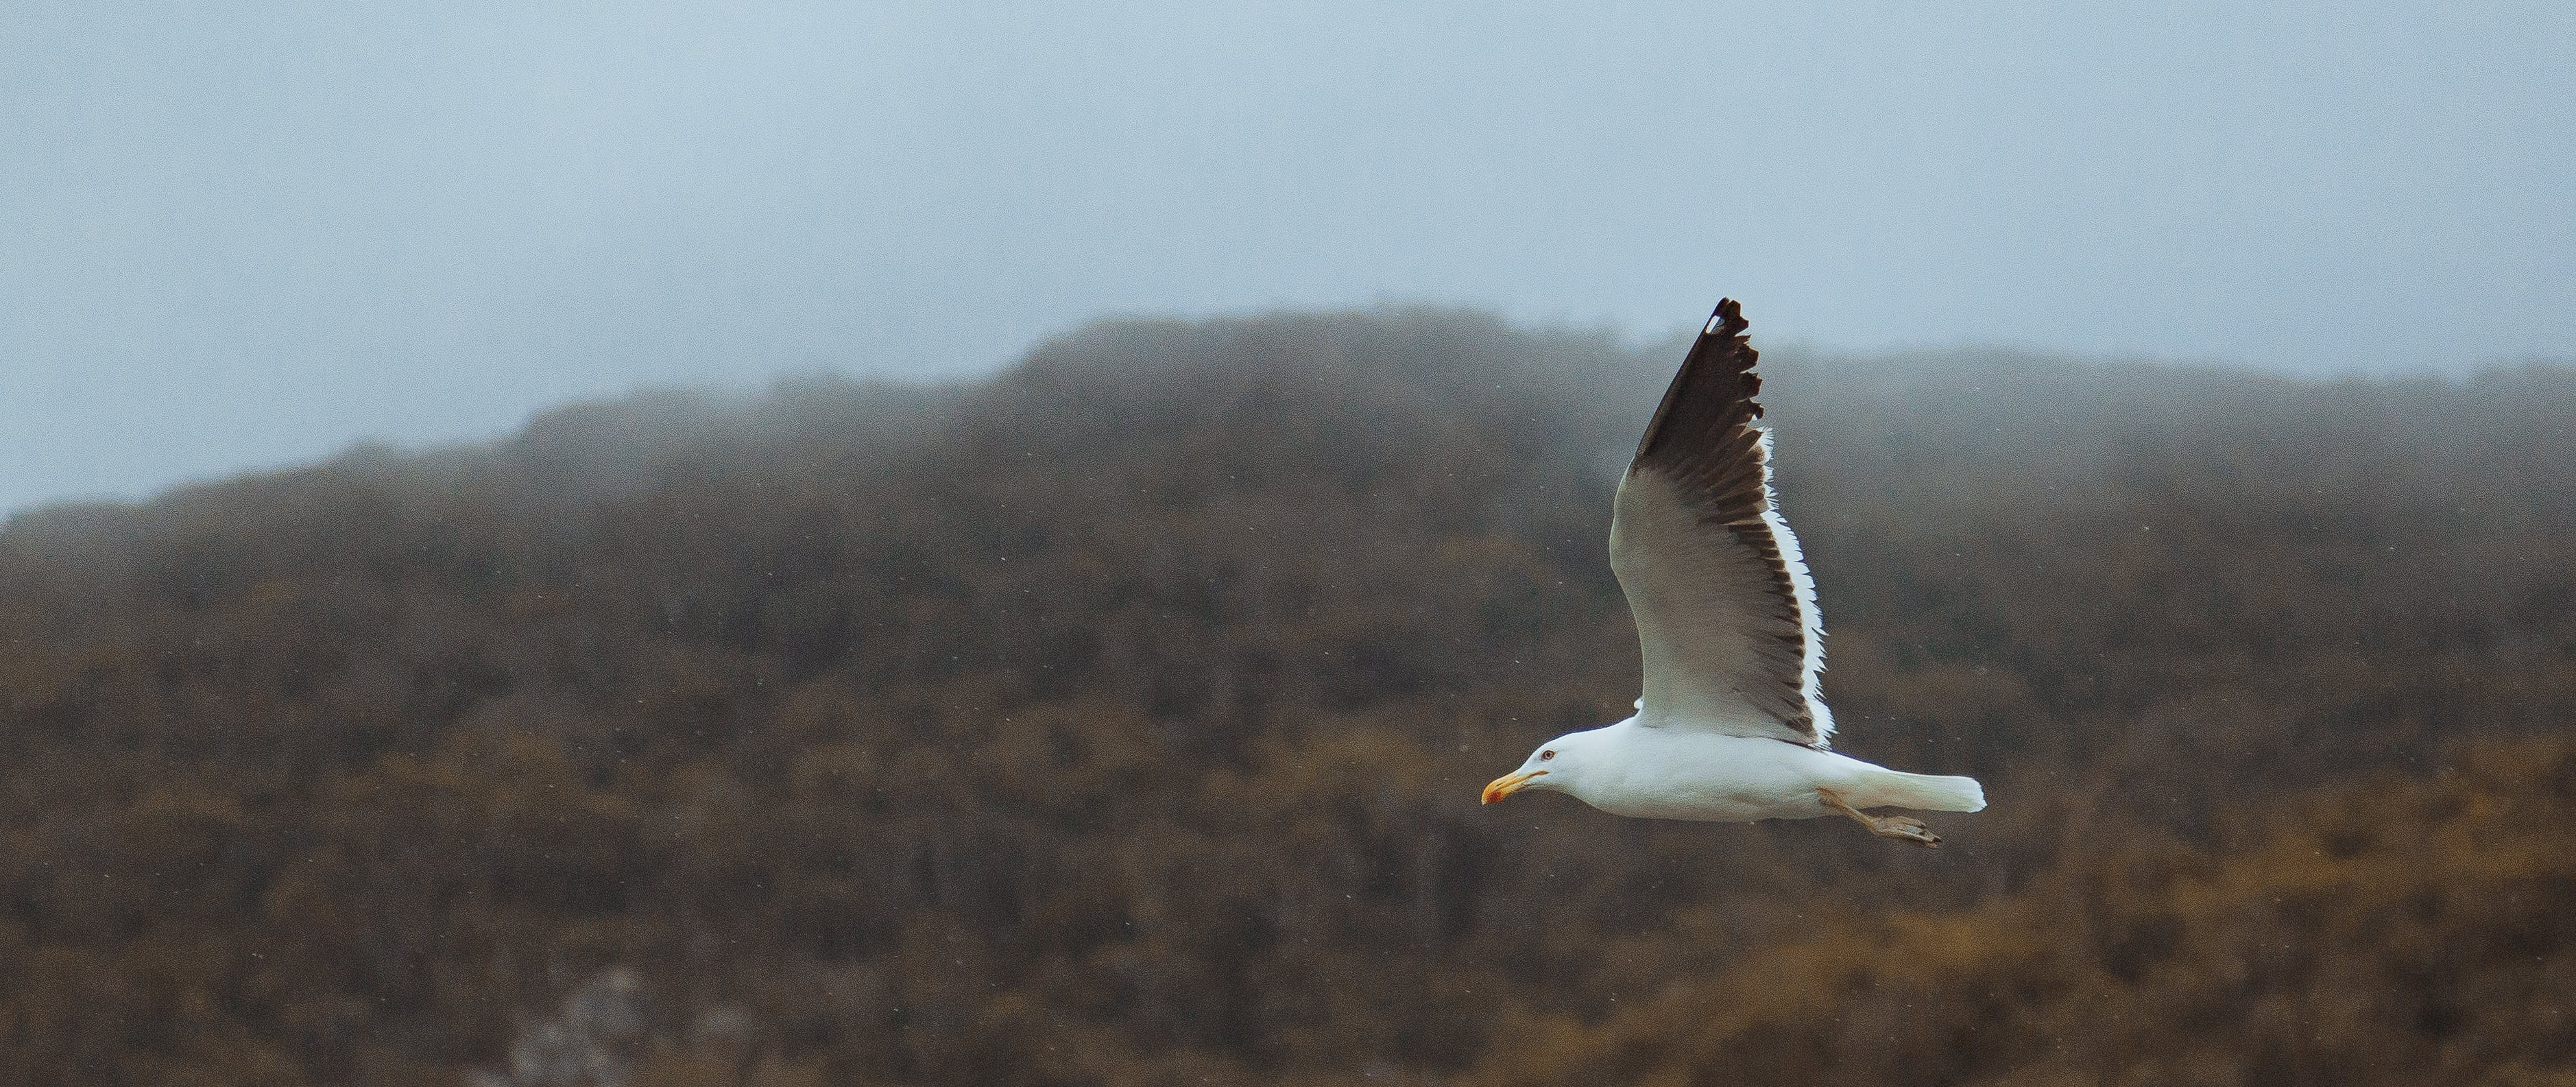 Seagull on Flight